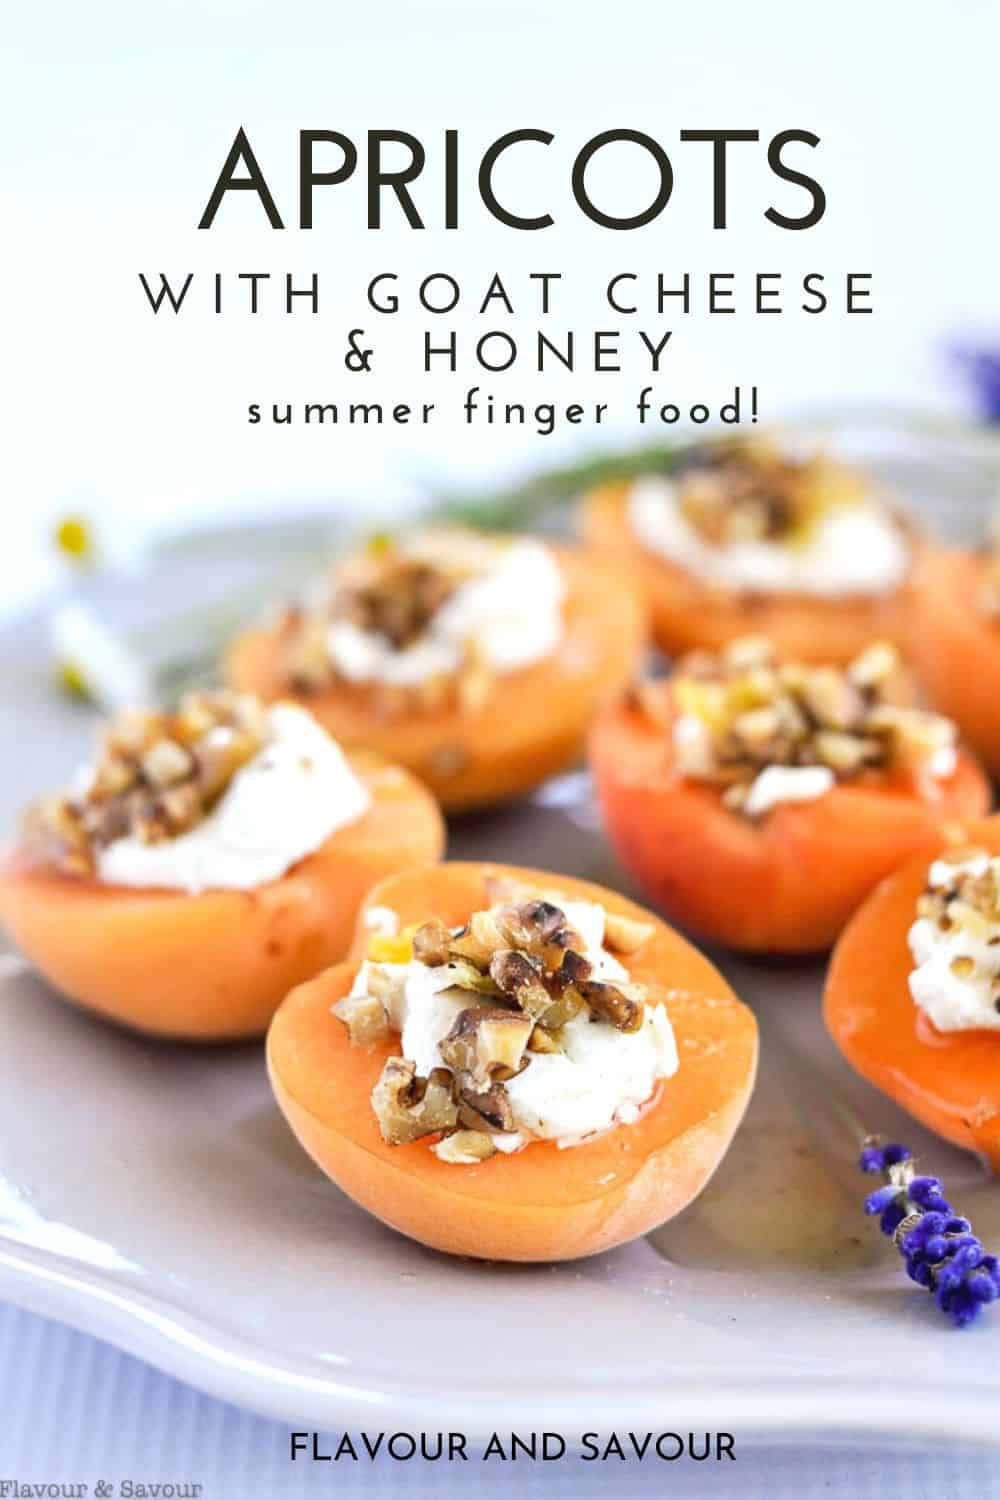 Apricots with Goat Cheese and Lavender Honey with text overlay